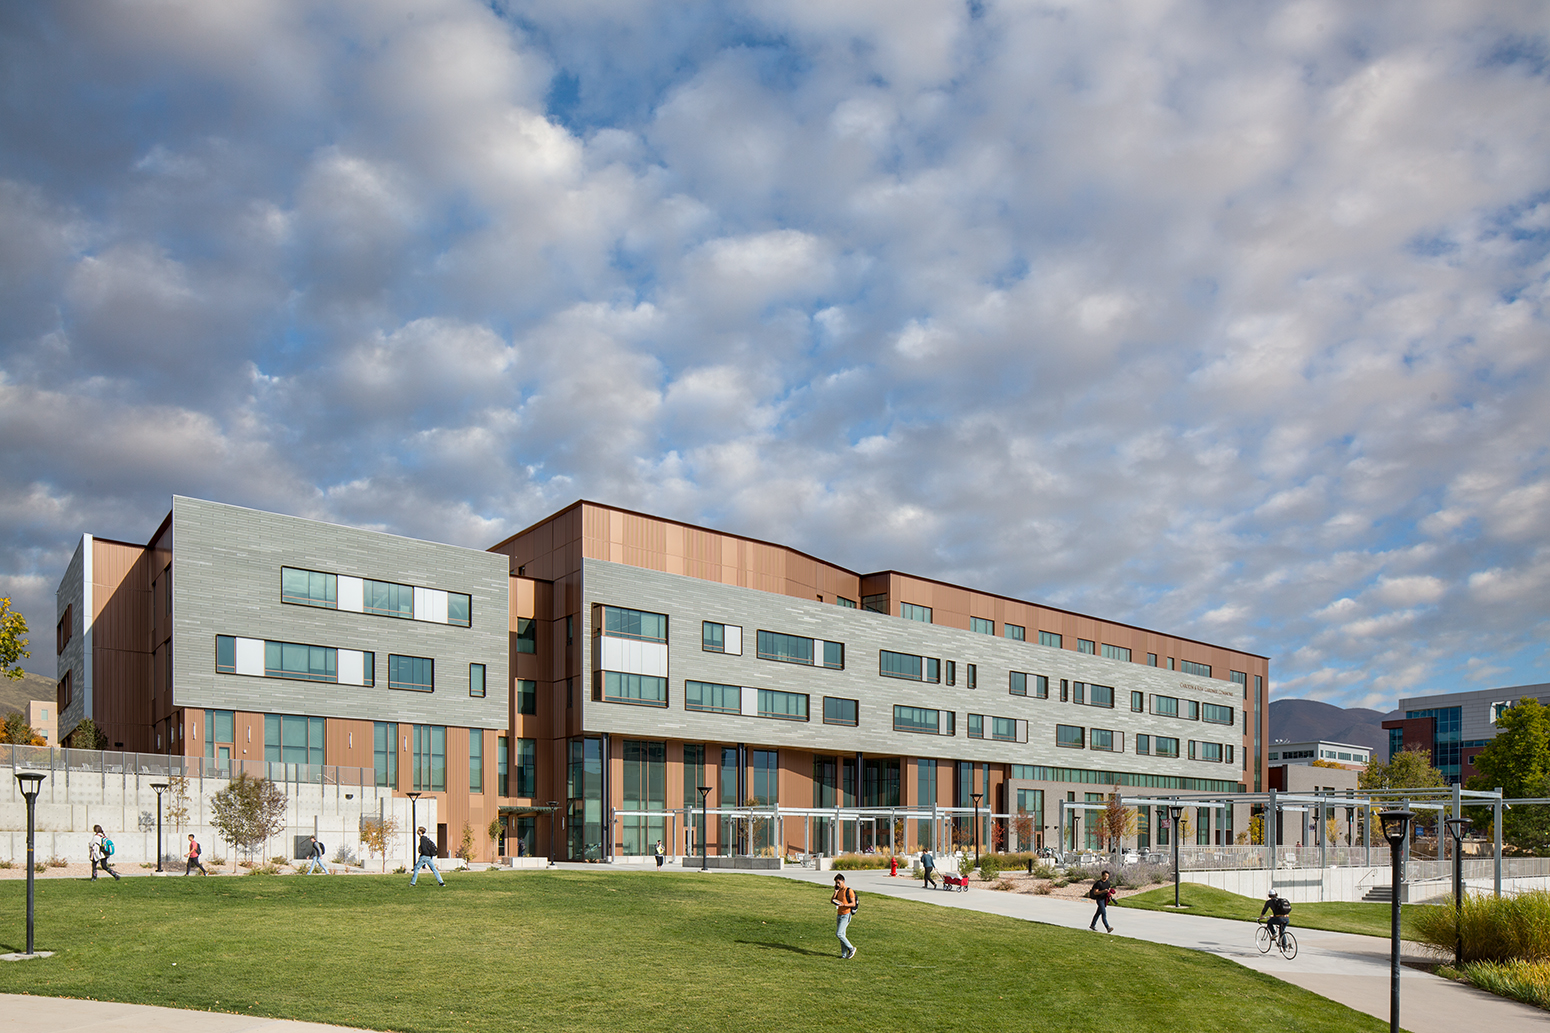 Gardner Commons, University of Utah. MHTN Architects.Architectural Photography by: Paul Richer / RICHER IMAGES